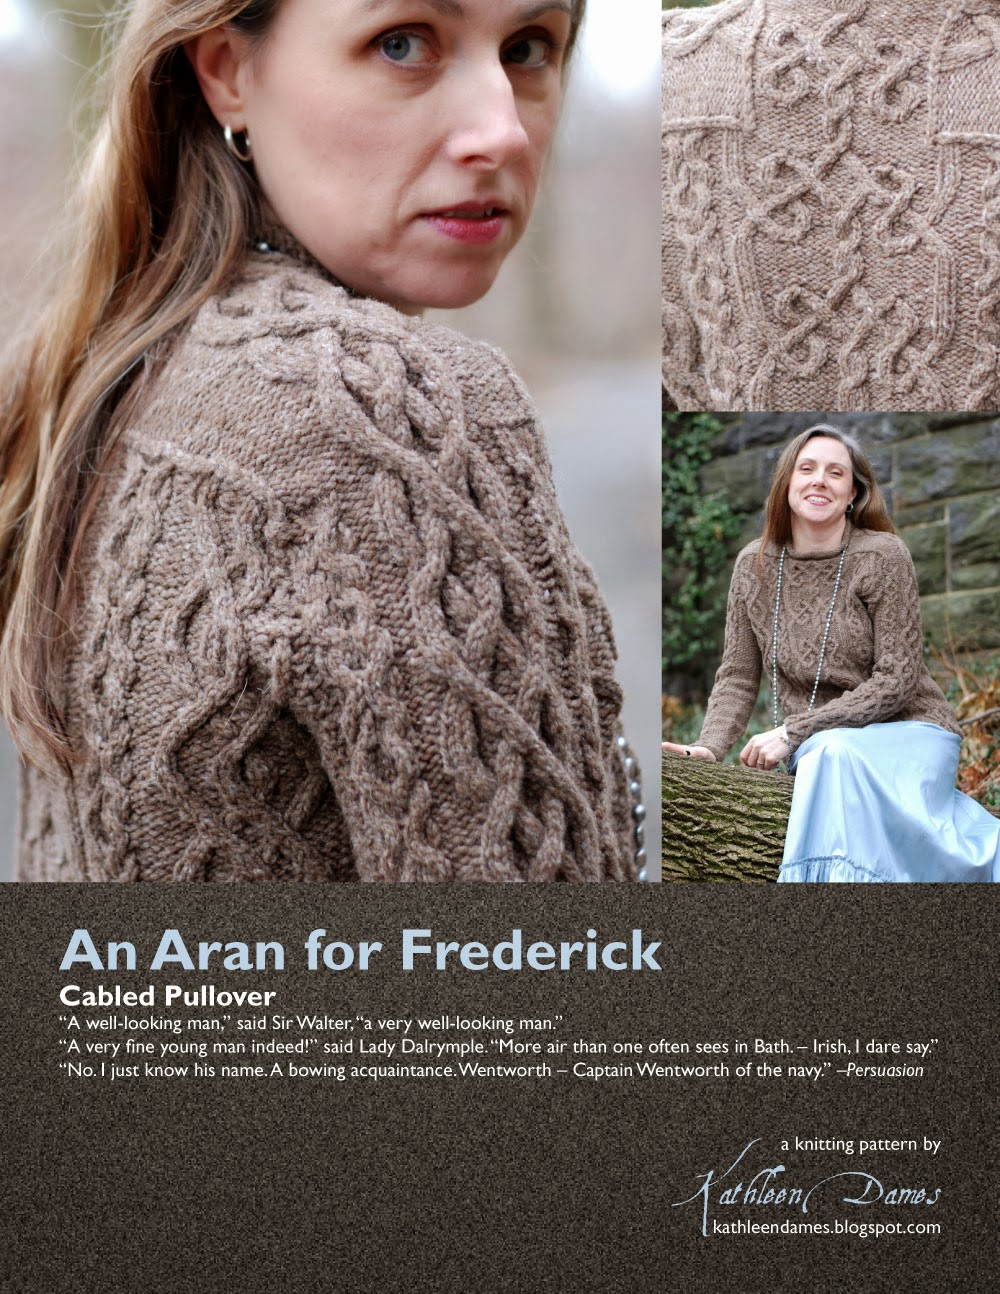 kathleen dames: Jane Austen Knits patterns now on Ravelry!